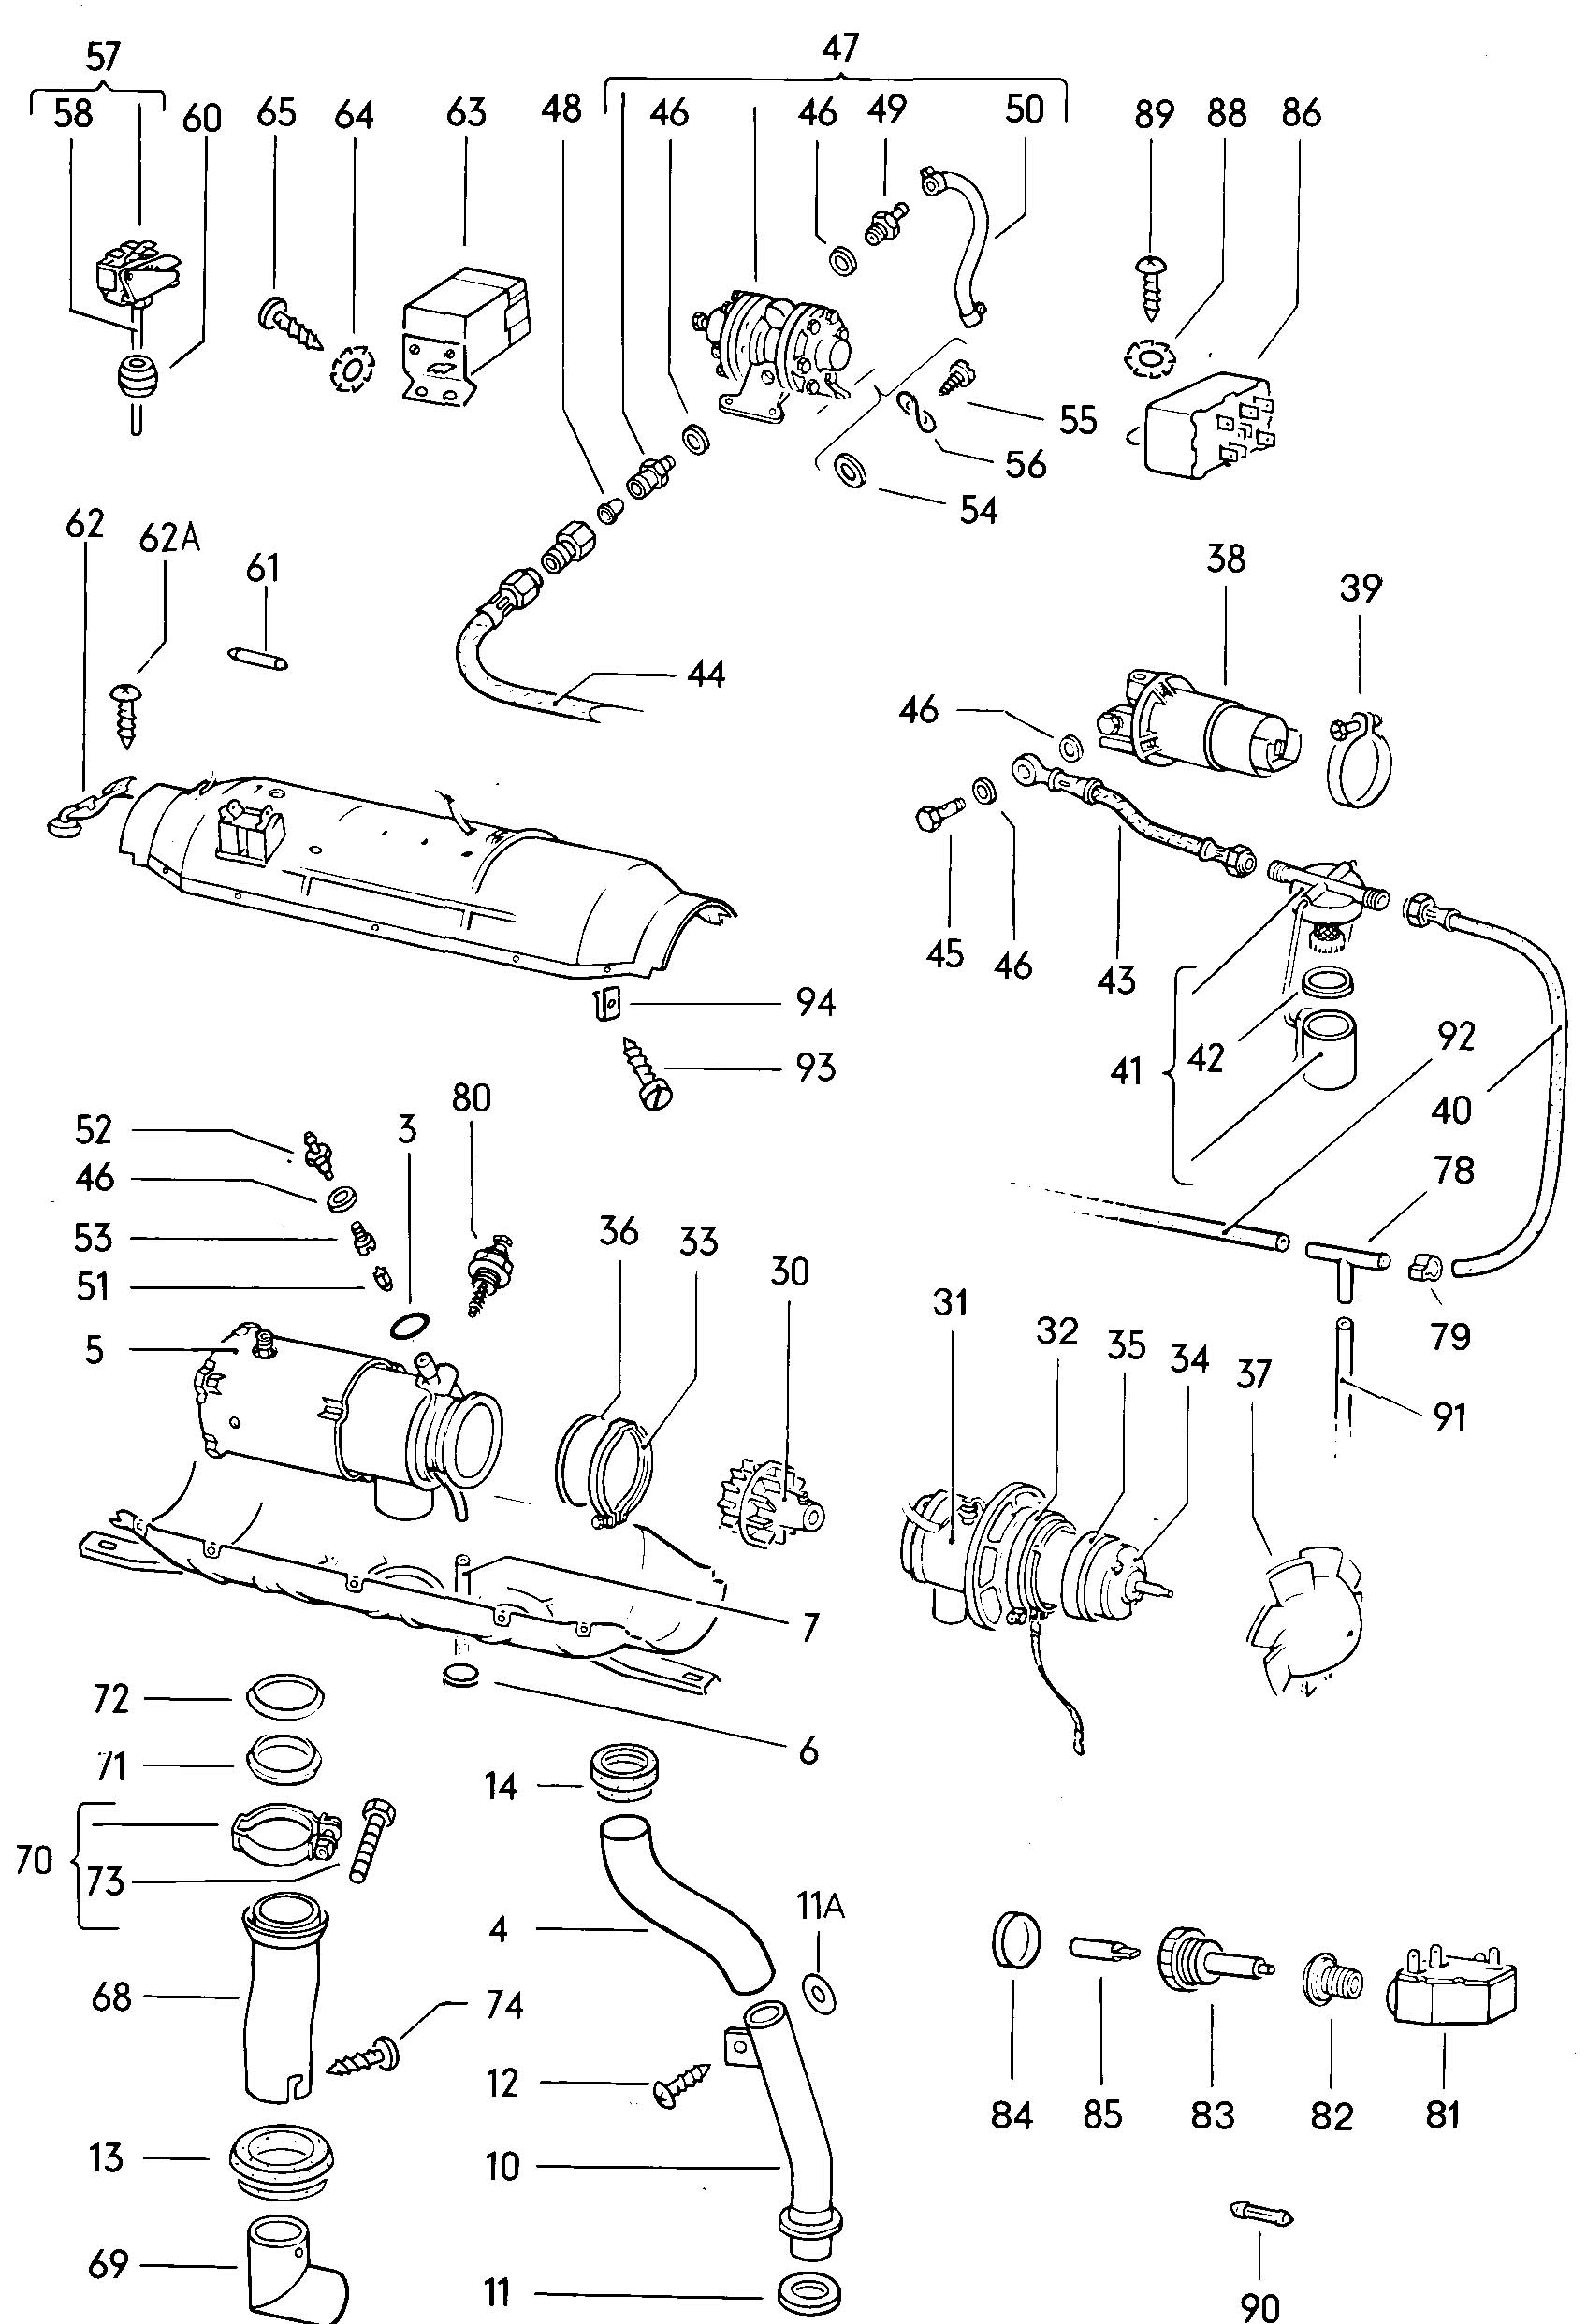 Vw Tiguan Engine Cover Diagram And Wiring 20v W Diesel Showassembly On